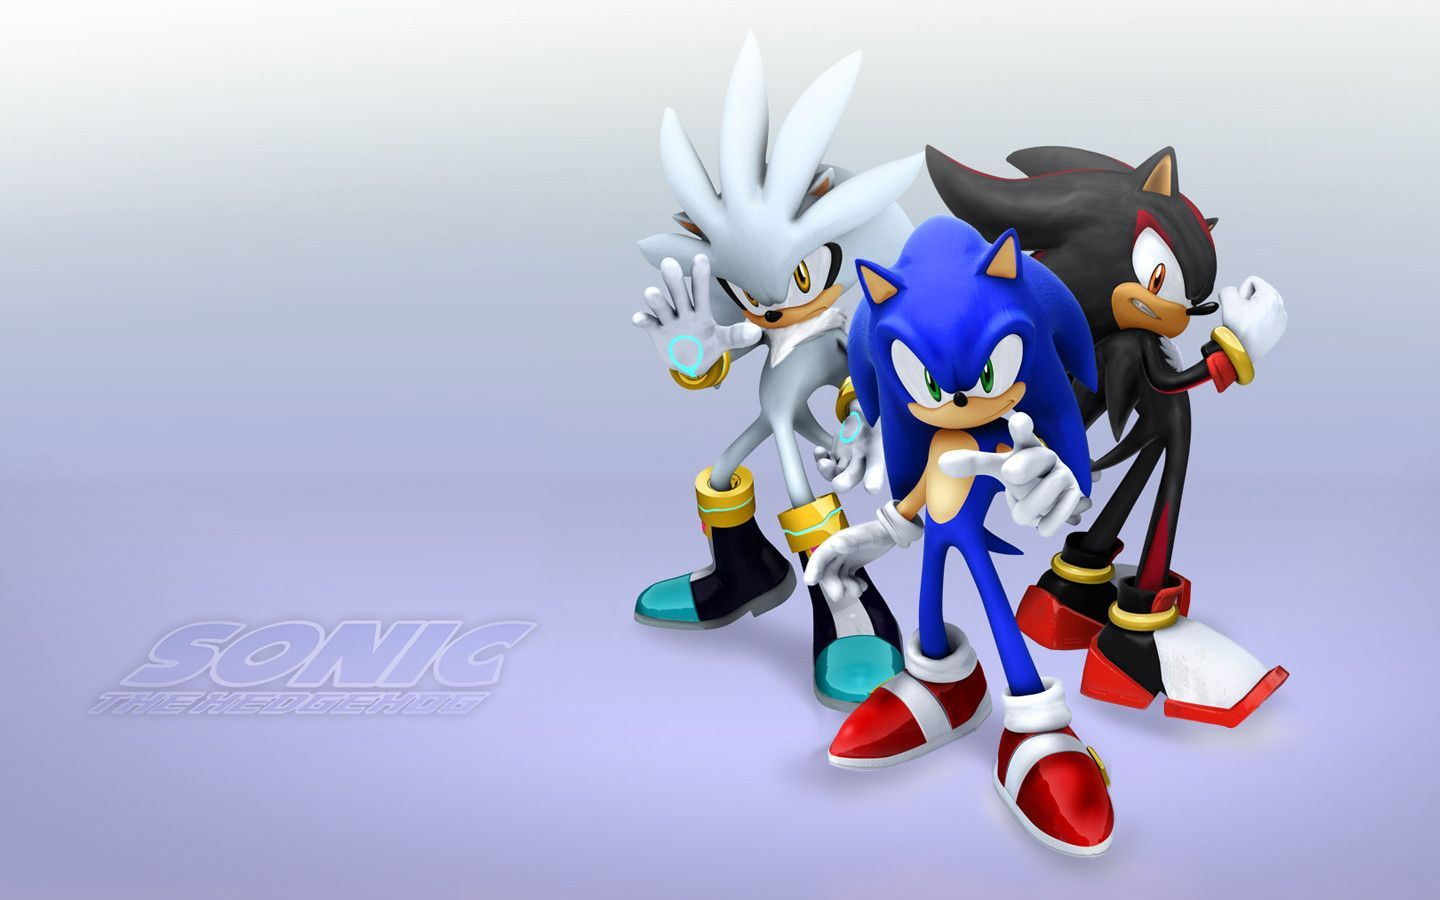 sonic the hedgehog wallpaper 1440x900 sonique the hedgehog